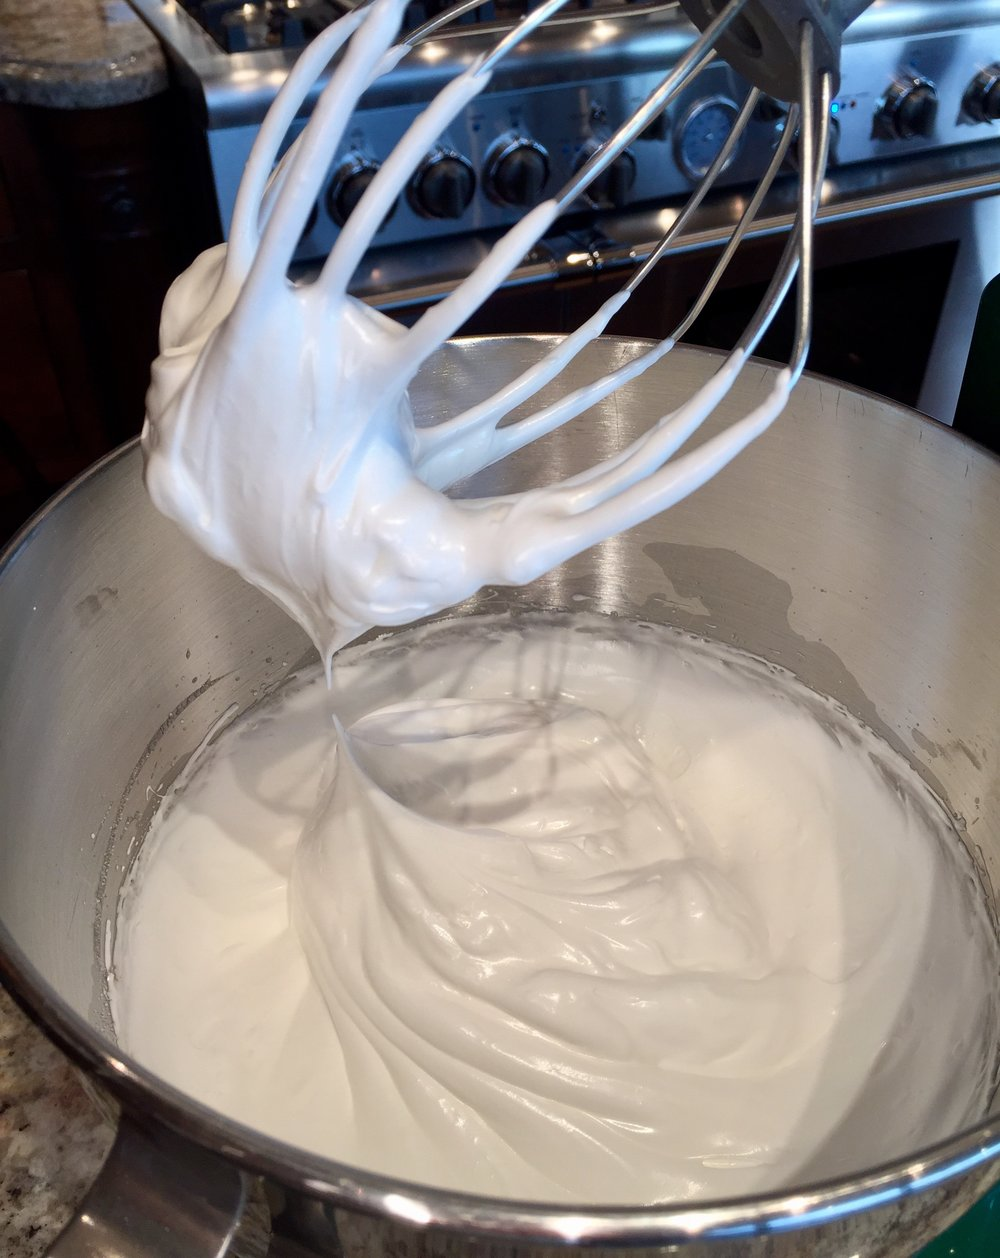 Step 3: Beating the egg whites.